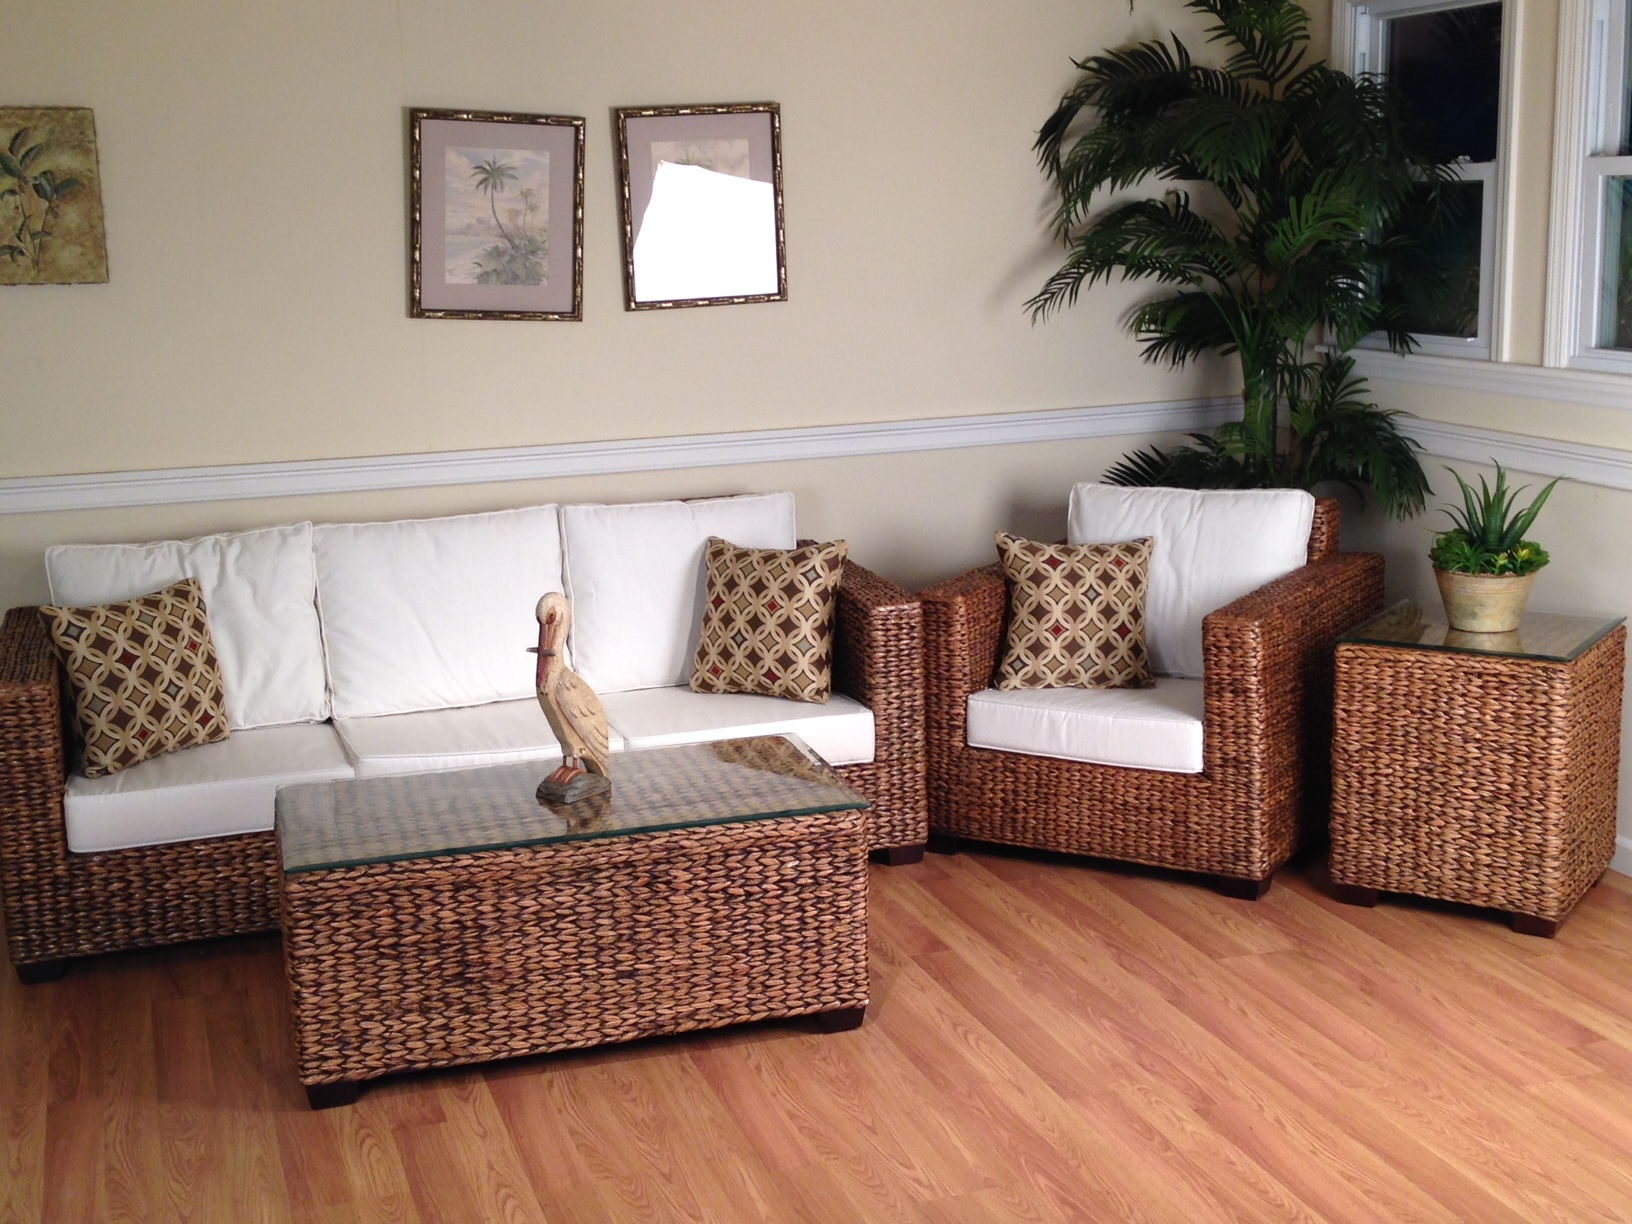 Maintenance and care for Seagrass furniture | Valley Furniture Havre